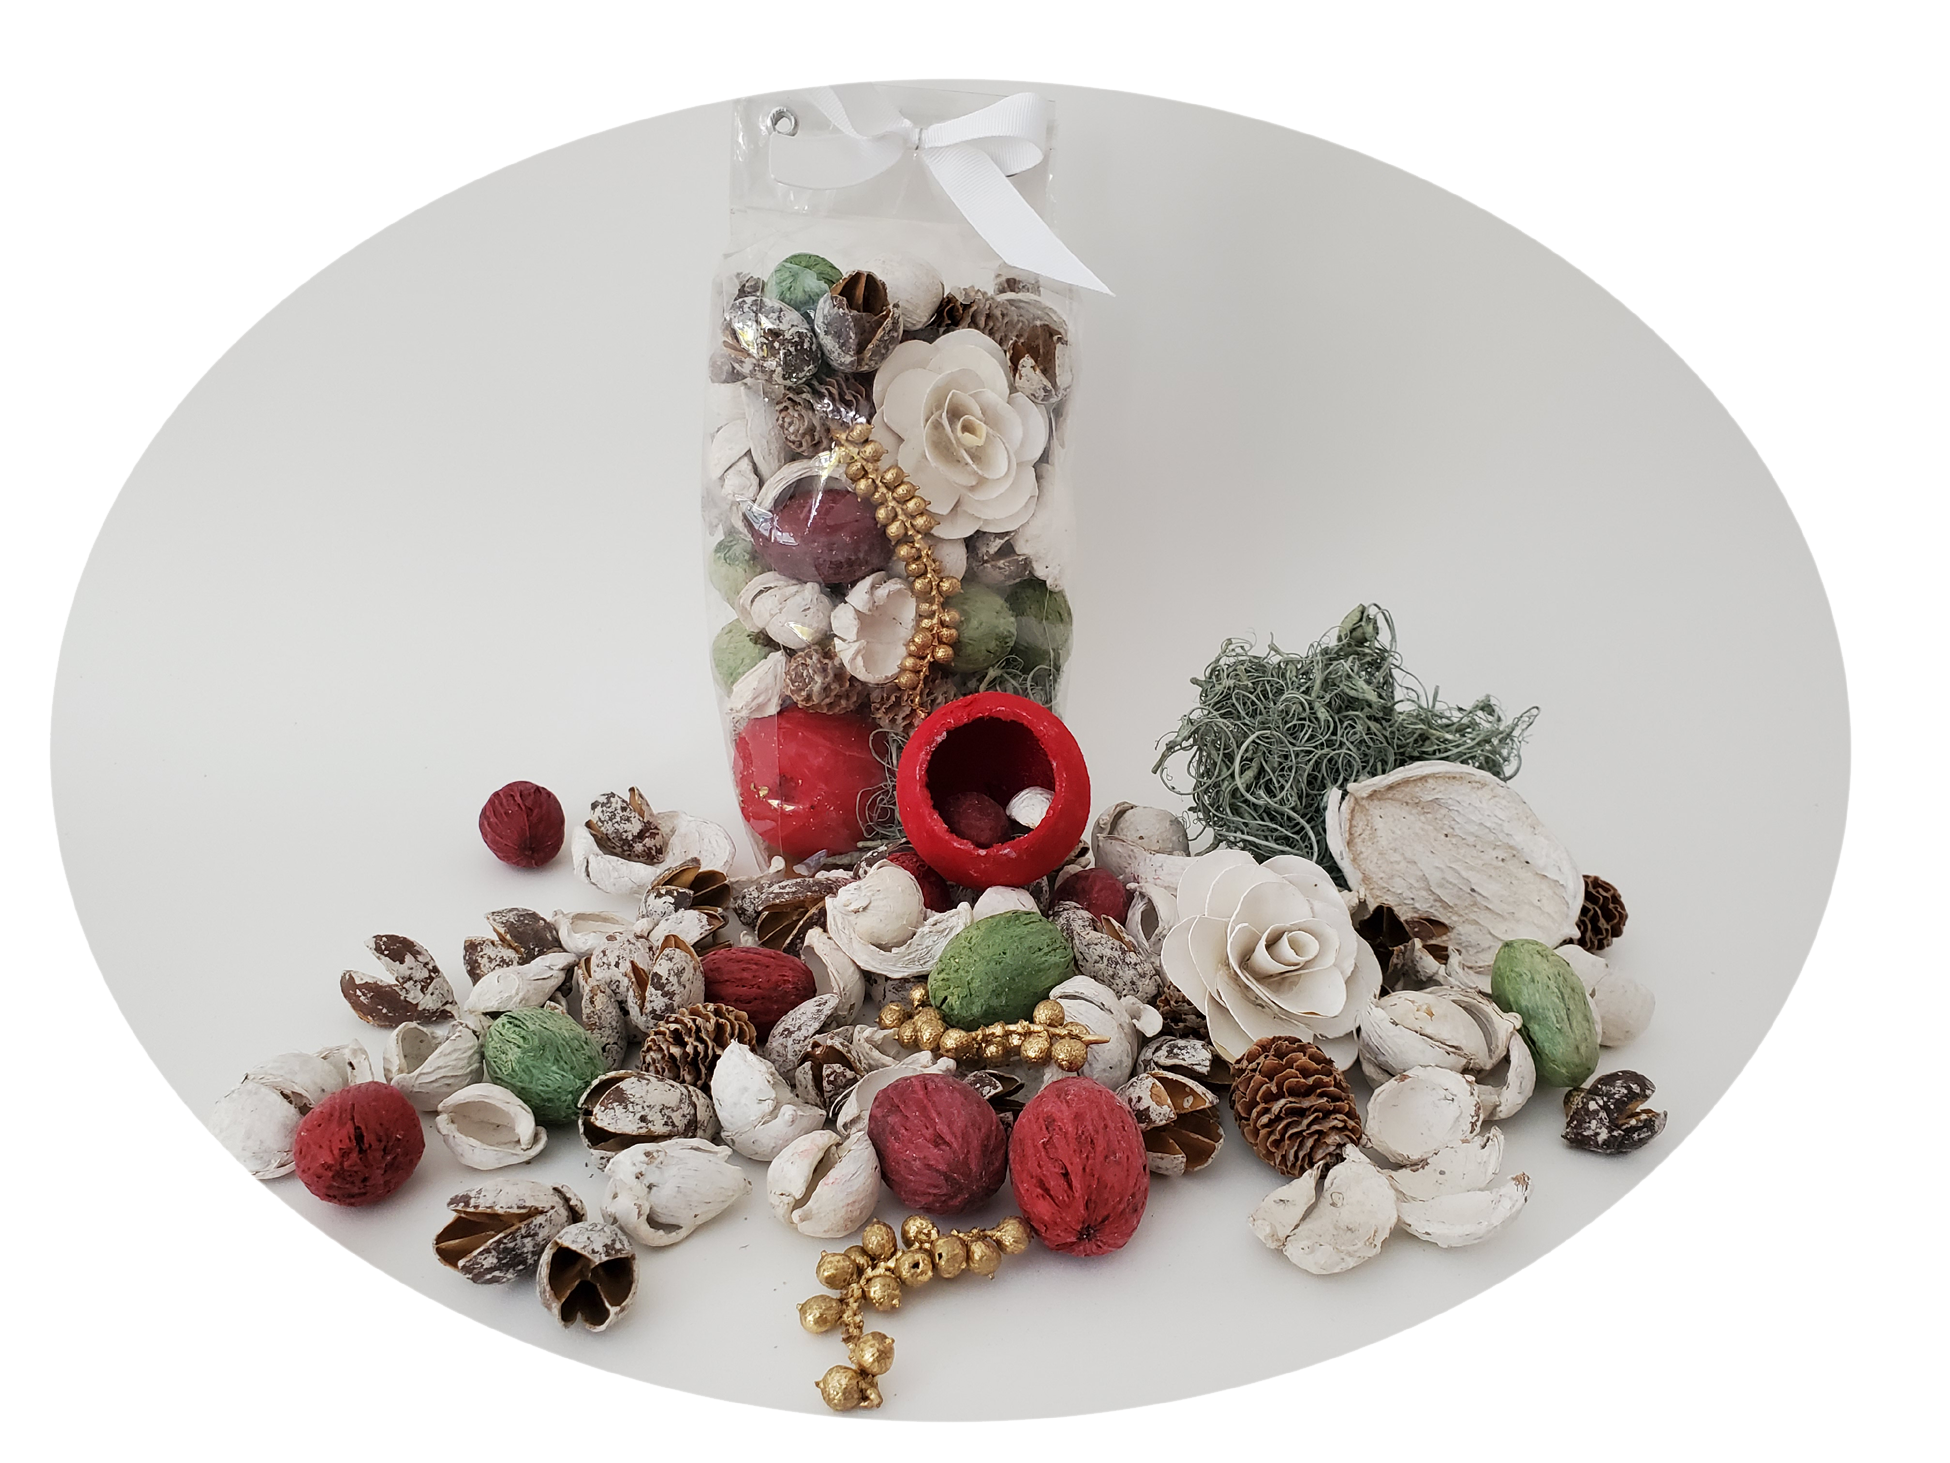 Potpourri by Bloementrends.com for Holiday Season Candles DIY - Candles Easy and Fun